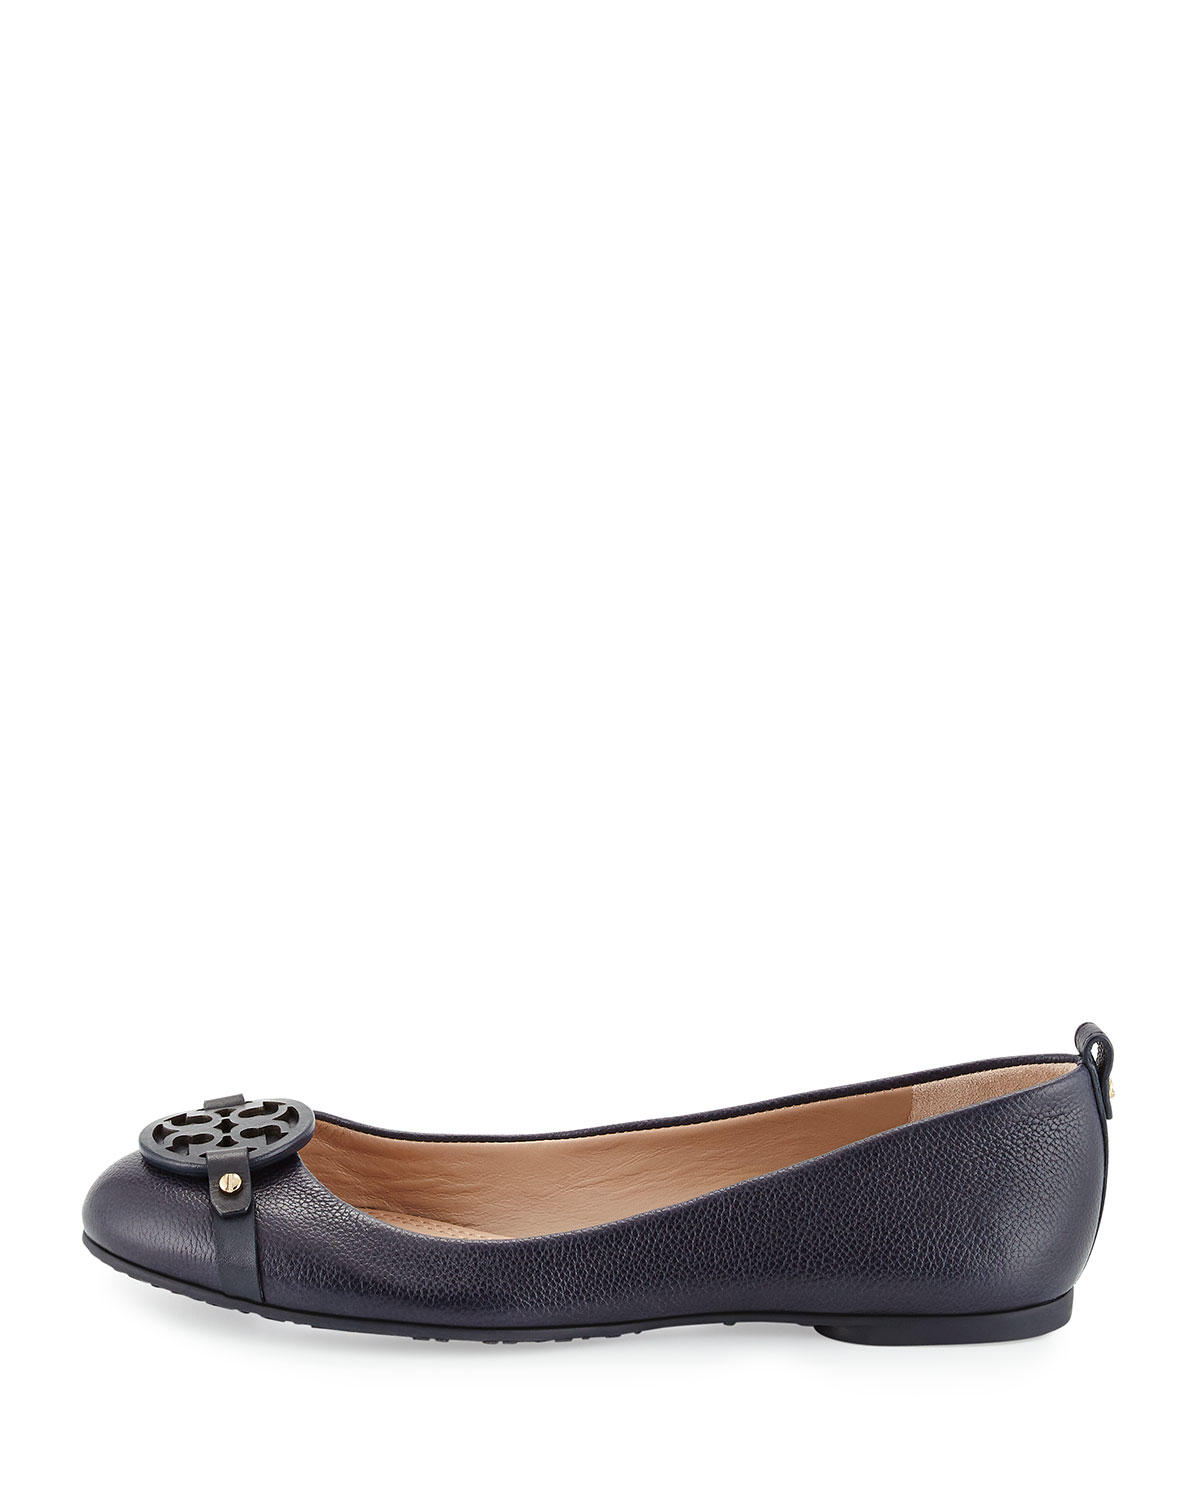 d1d736a6a Tory Burch Mini Miller Leather Ballet Flats in Blue - Lyst